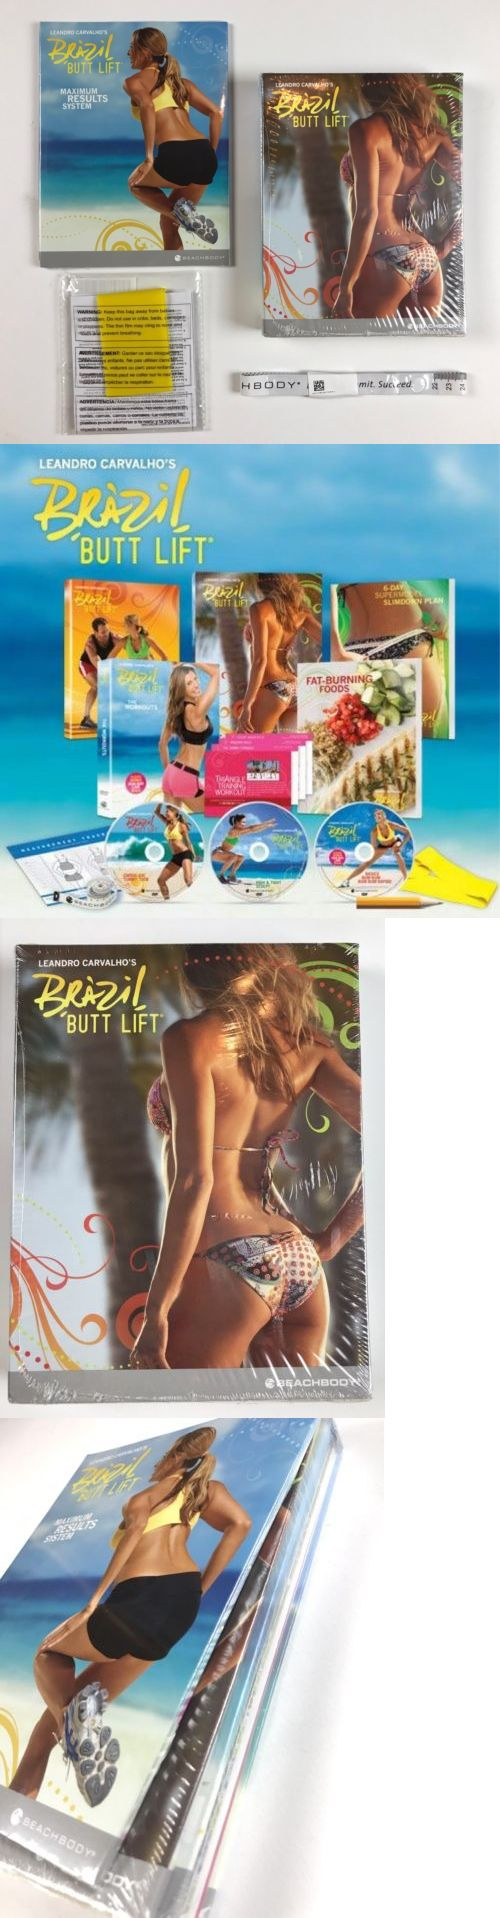 Fitness DVDs 109130: Brazil Butt Lift Leandro Carvalho Workout Dvd Kit - New In Package + Bonus Band -> BUY IT NOW ONLY: $55 on eBay!